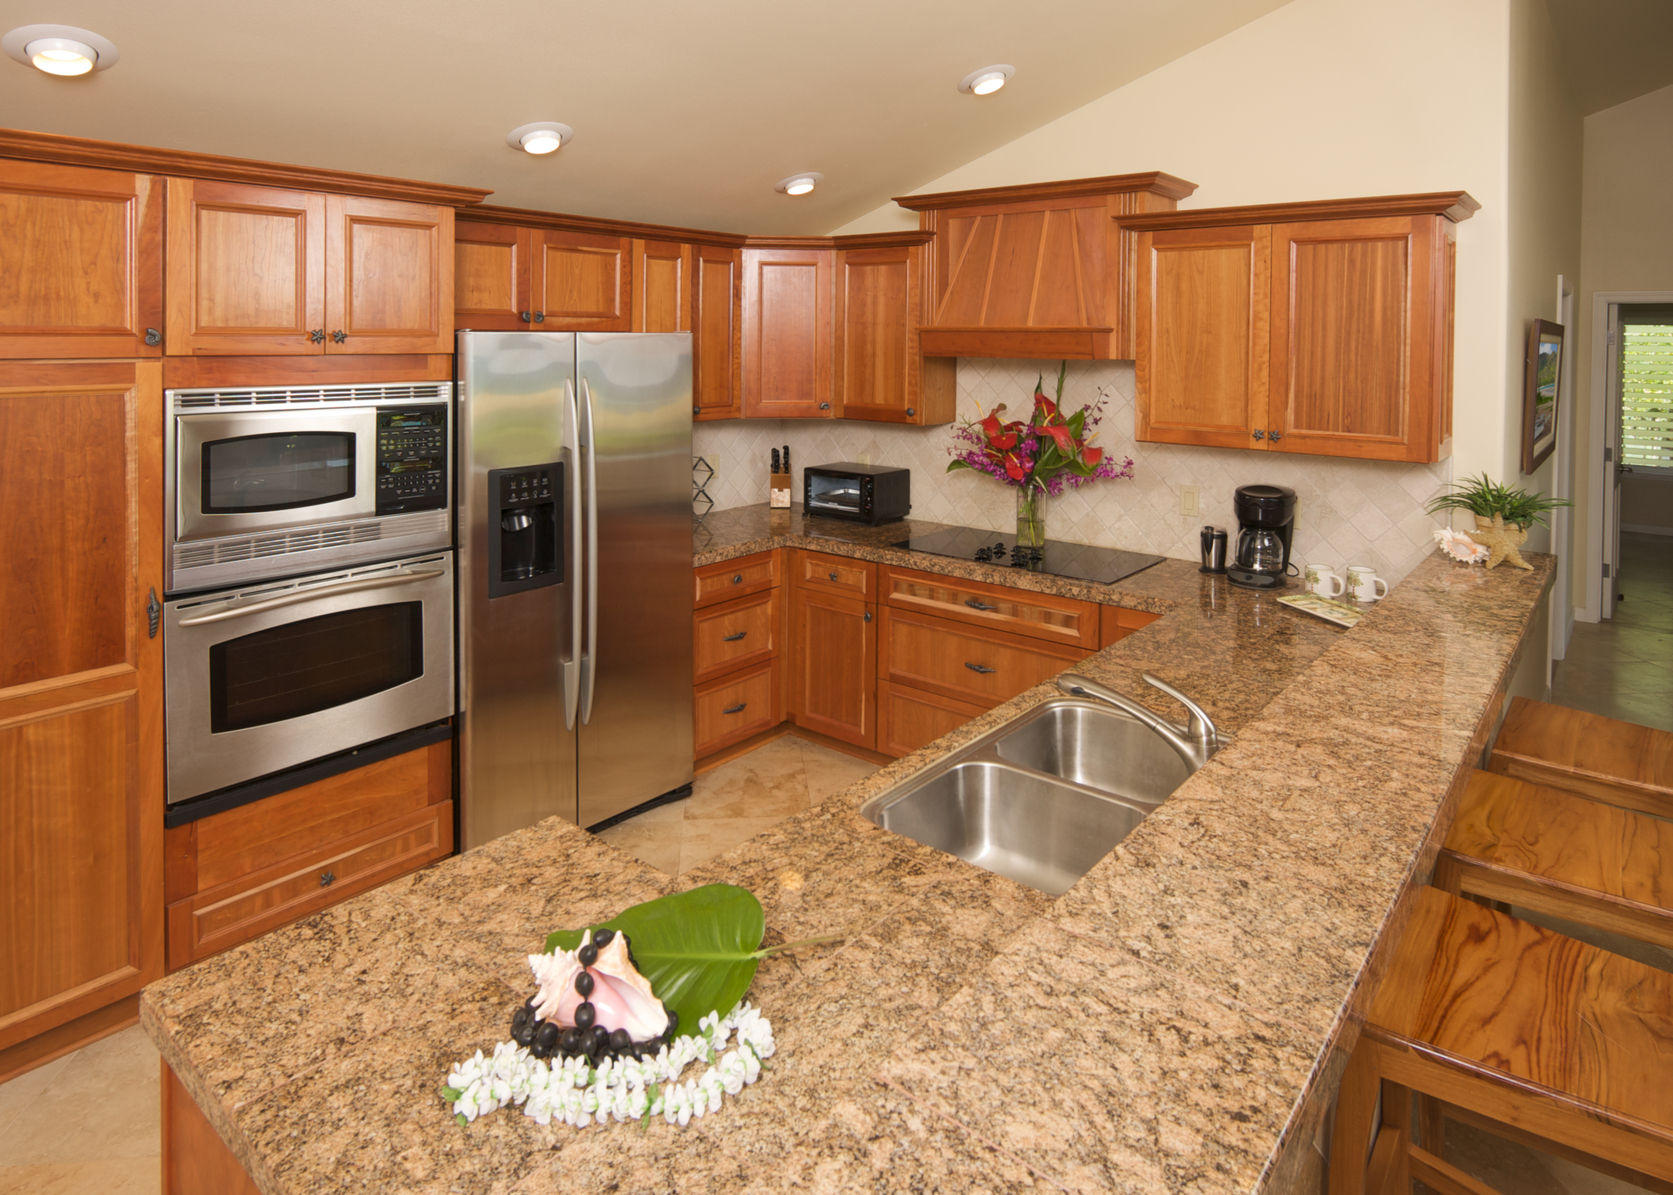 how much does it cost to remodel a kitchen remodel kitchen cost cost to remodel a kitchen